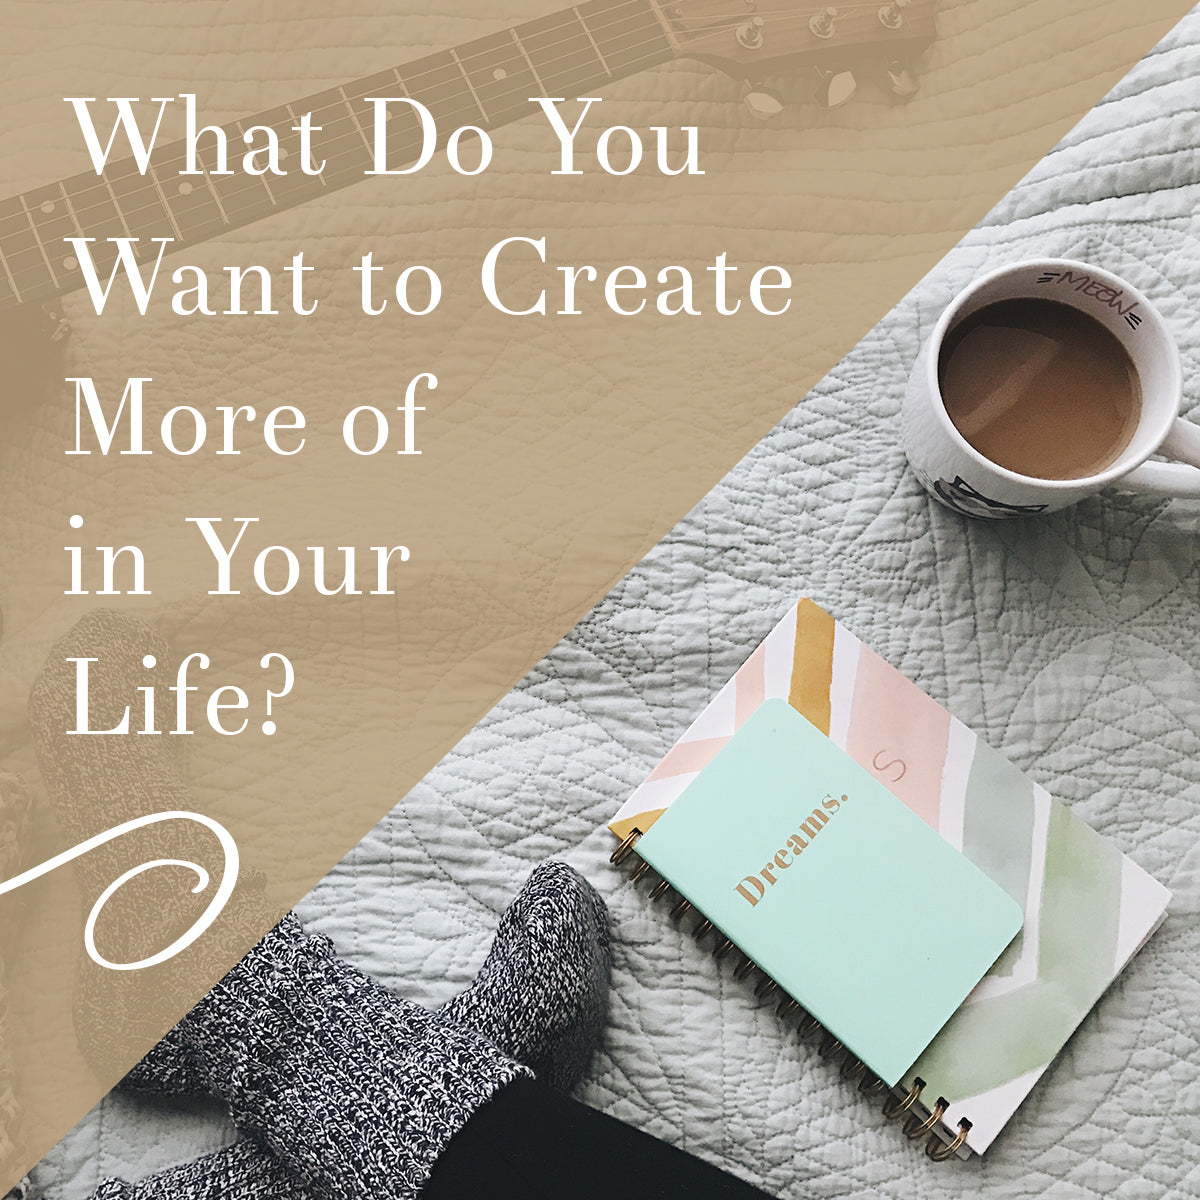 What do you want to create more of in your life?